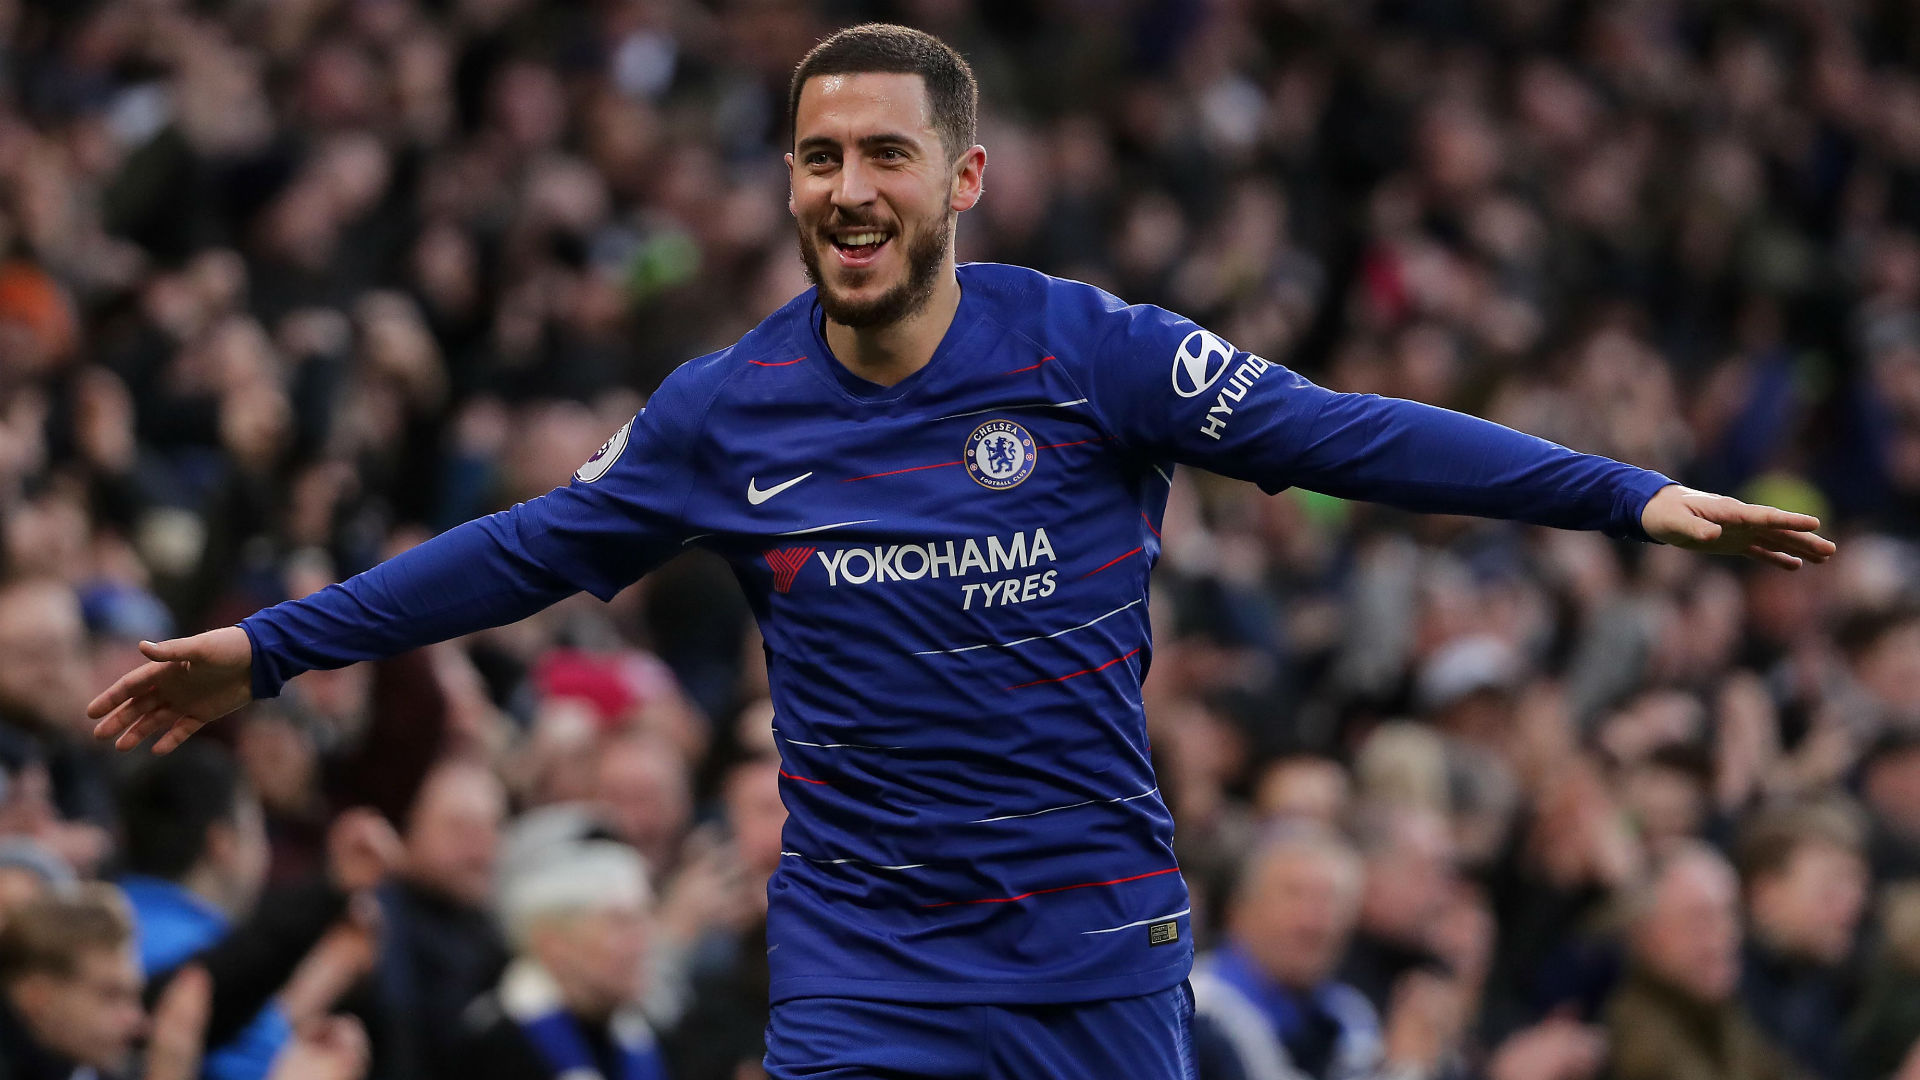 Sarri's response to Hazard saying he has made decision on his future